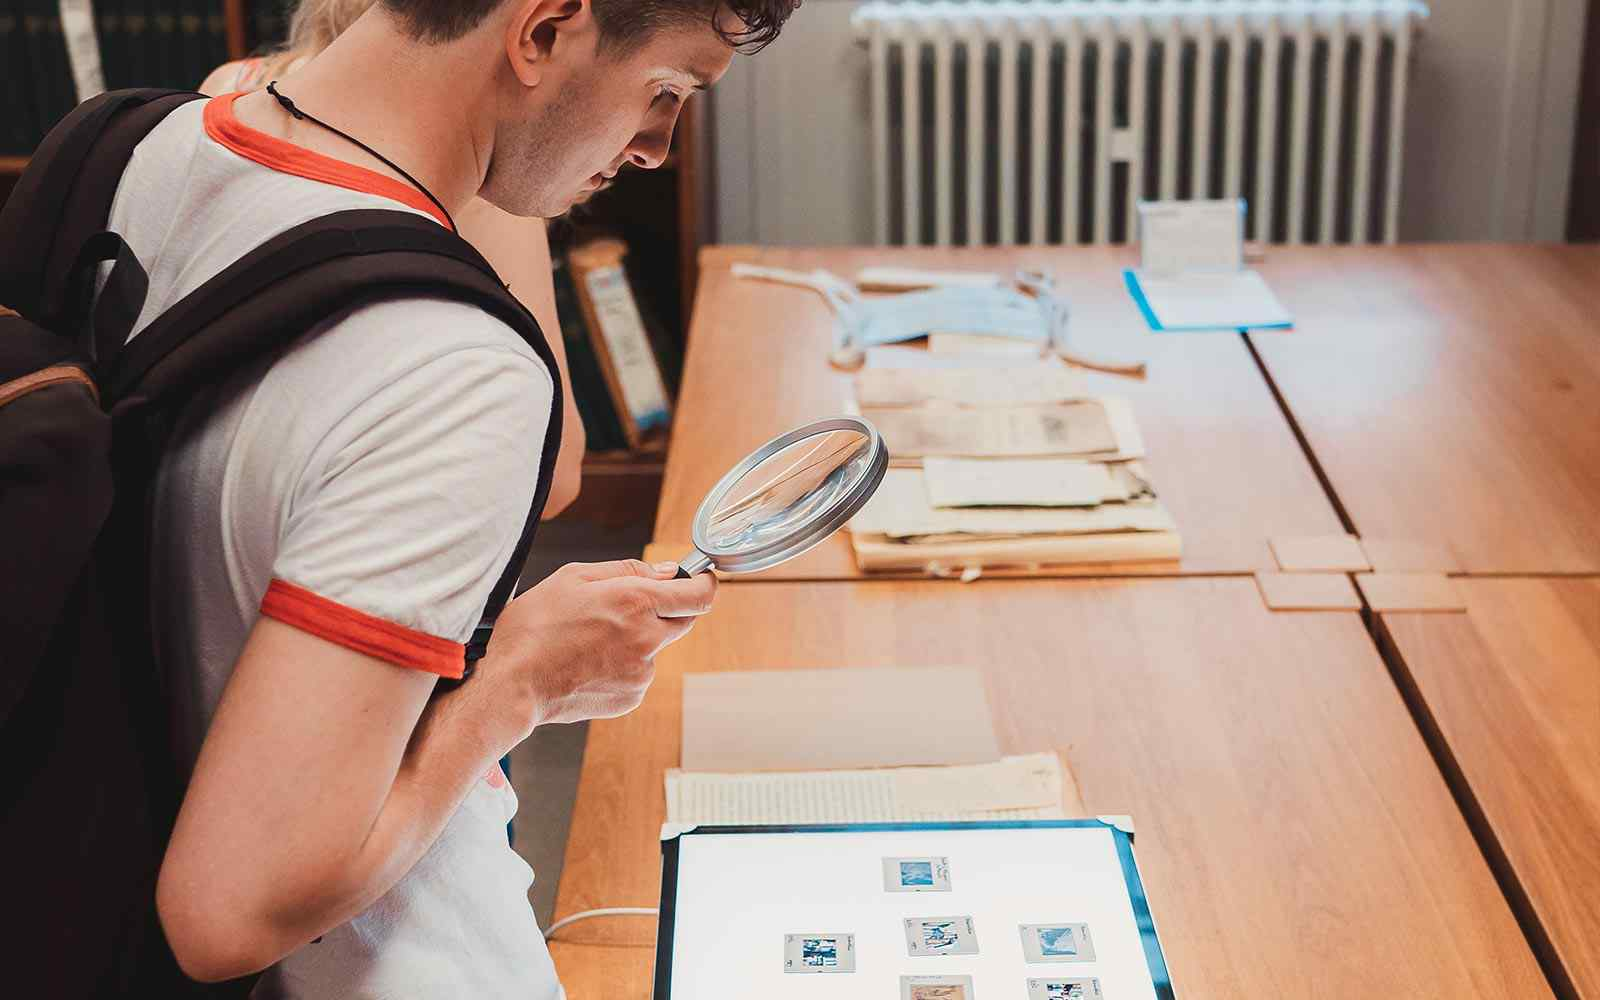 A student looking at artefacts through a magnifying glass